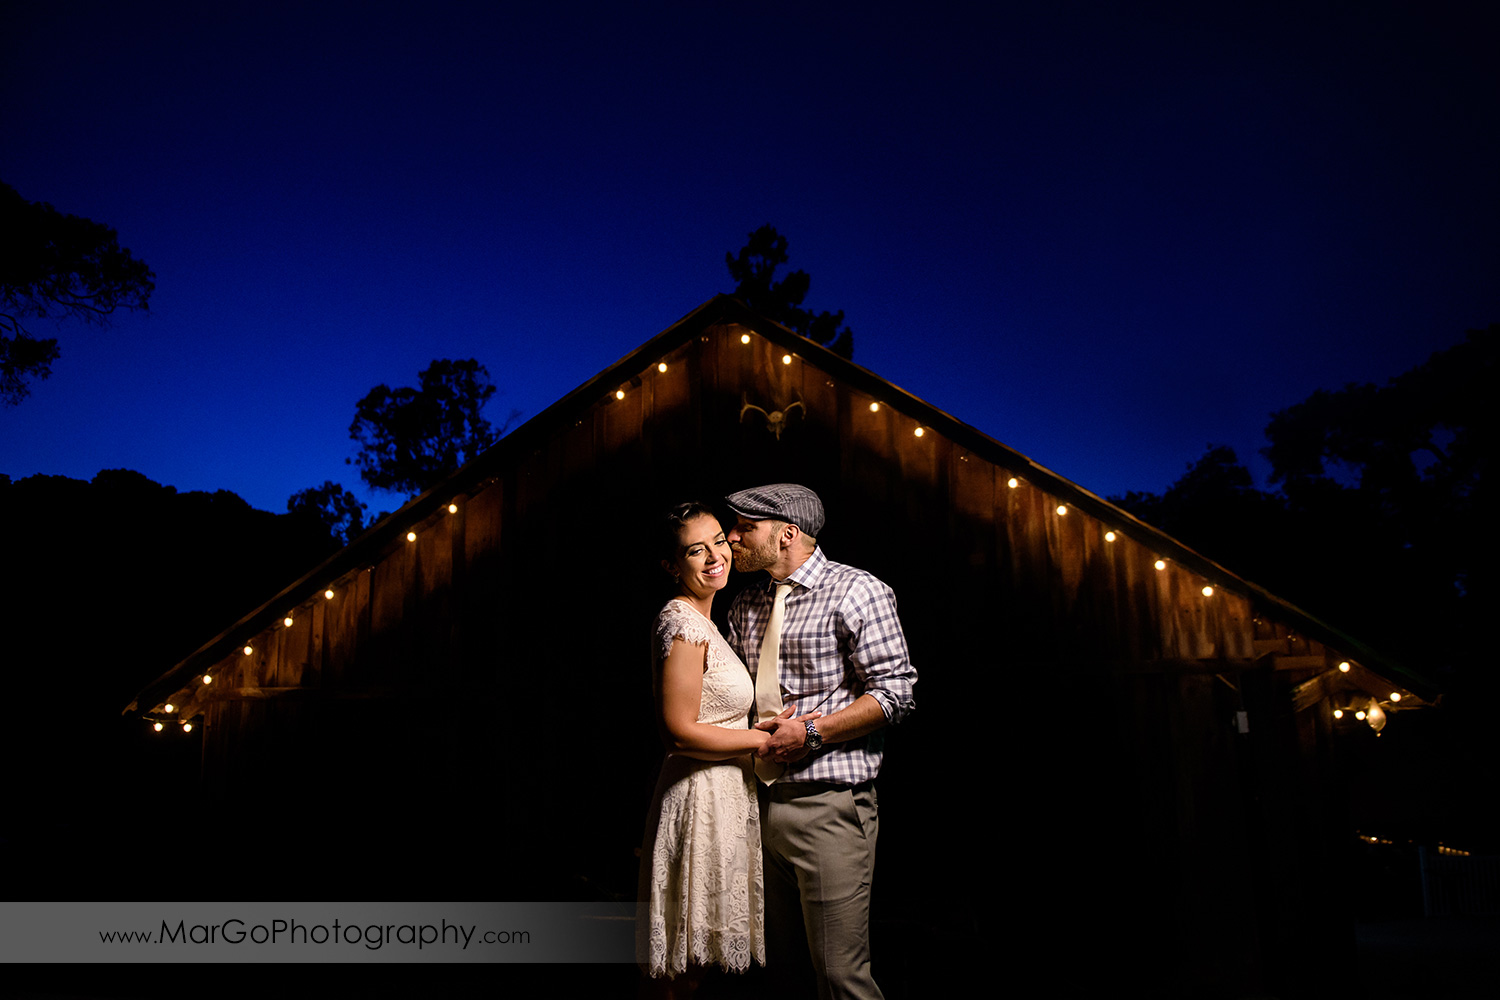 night portrait of bride and groom at Picchetti Winery in Cupertino